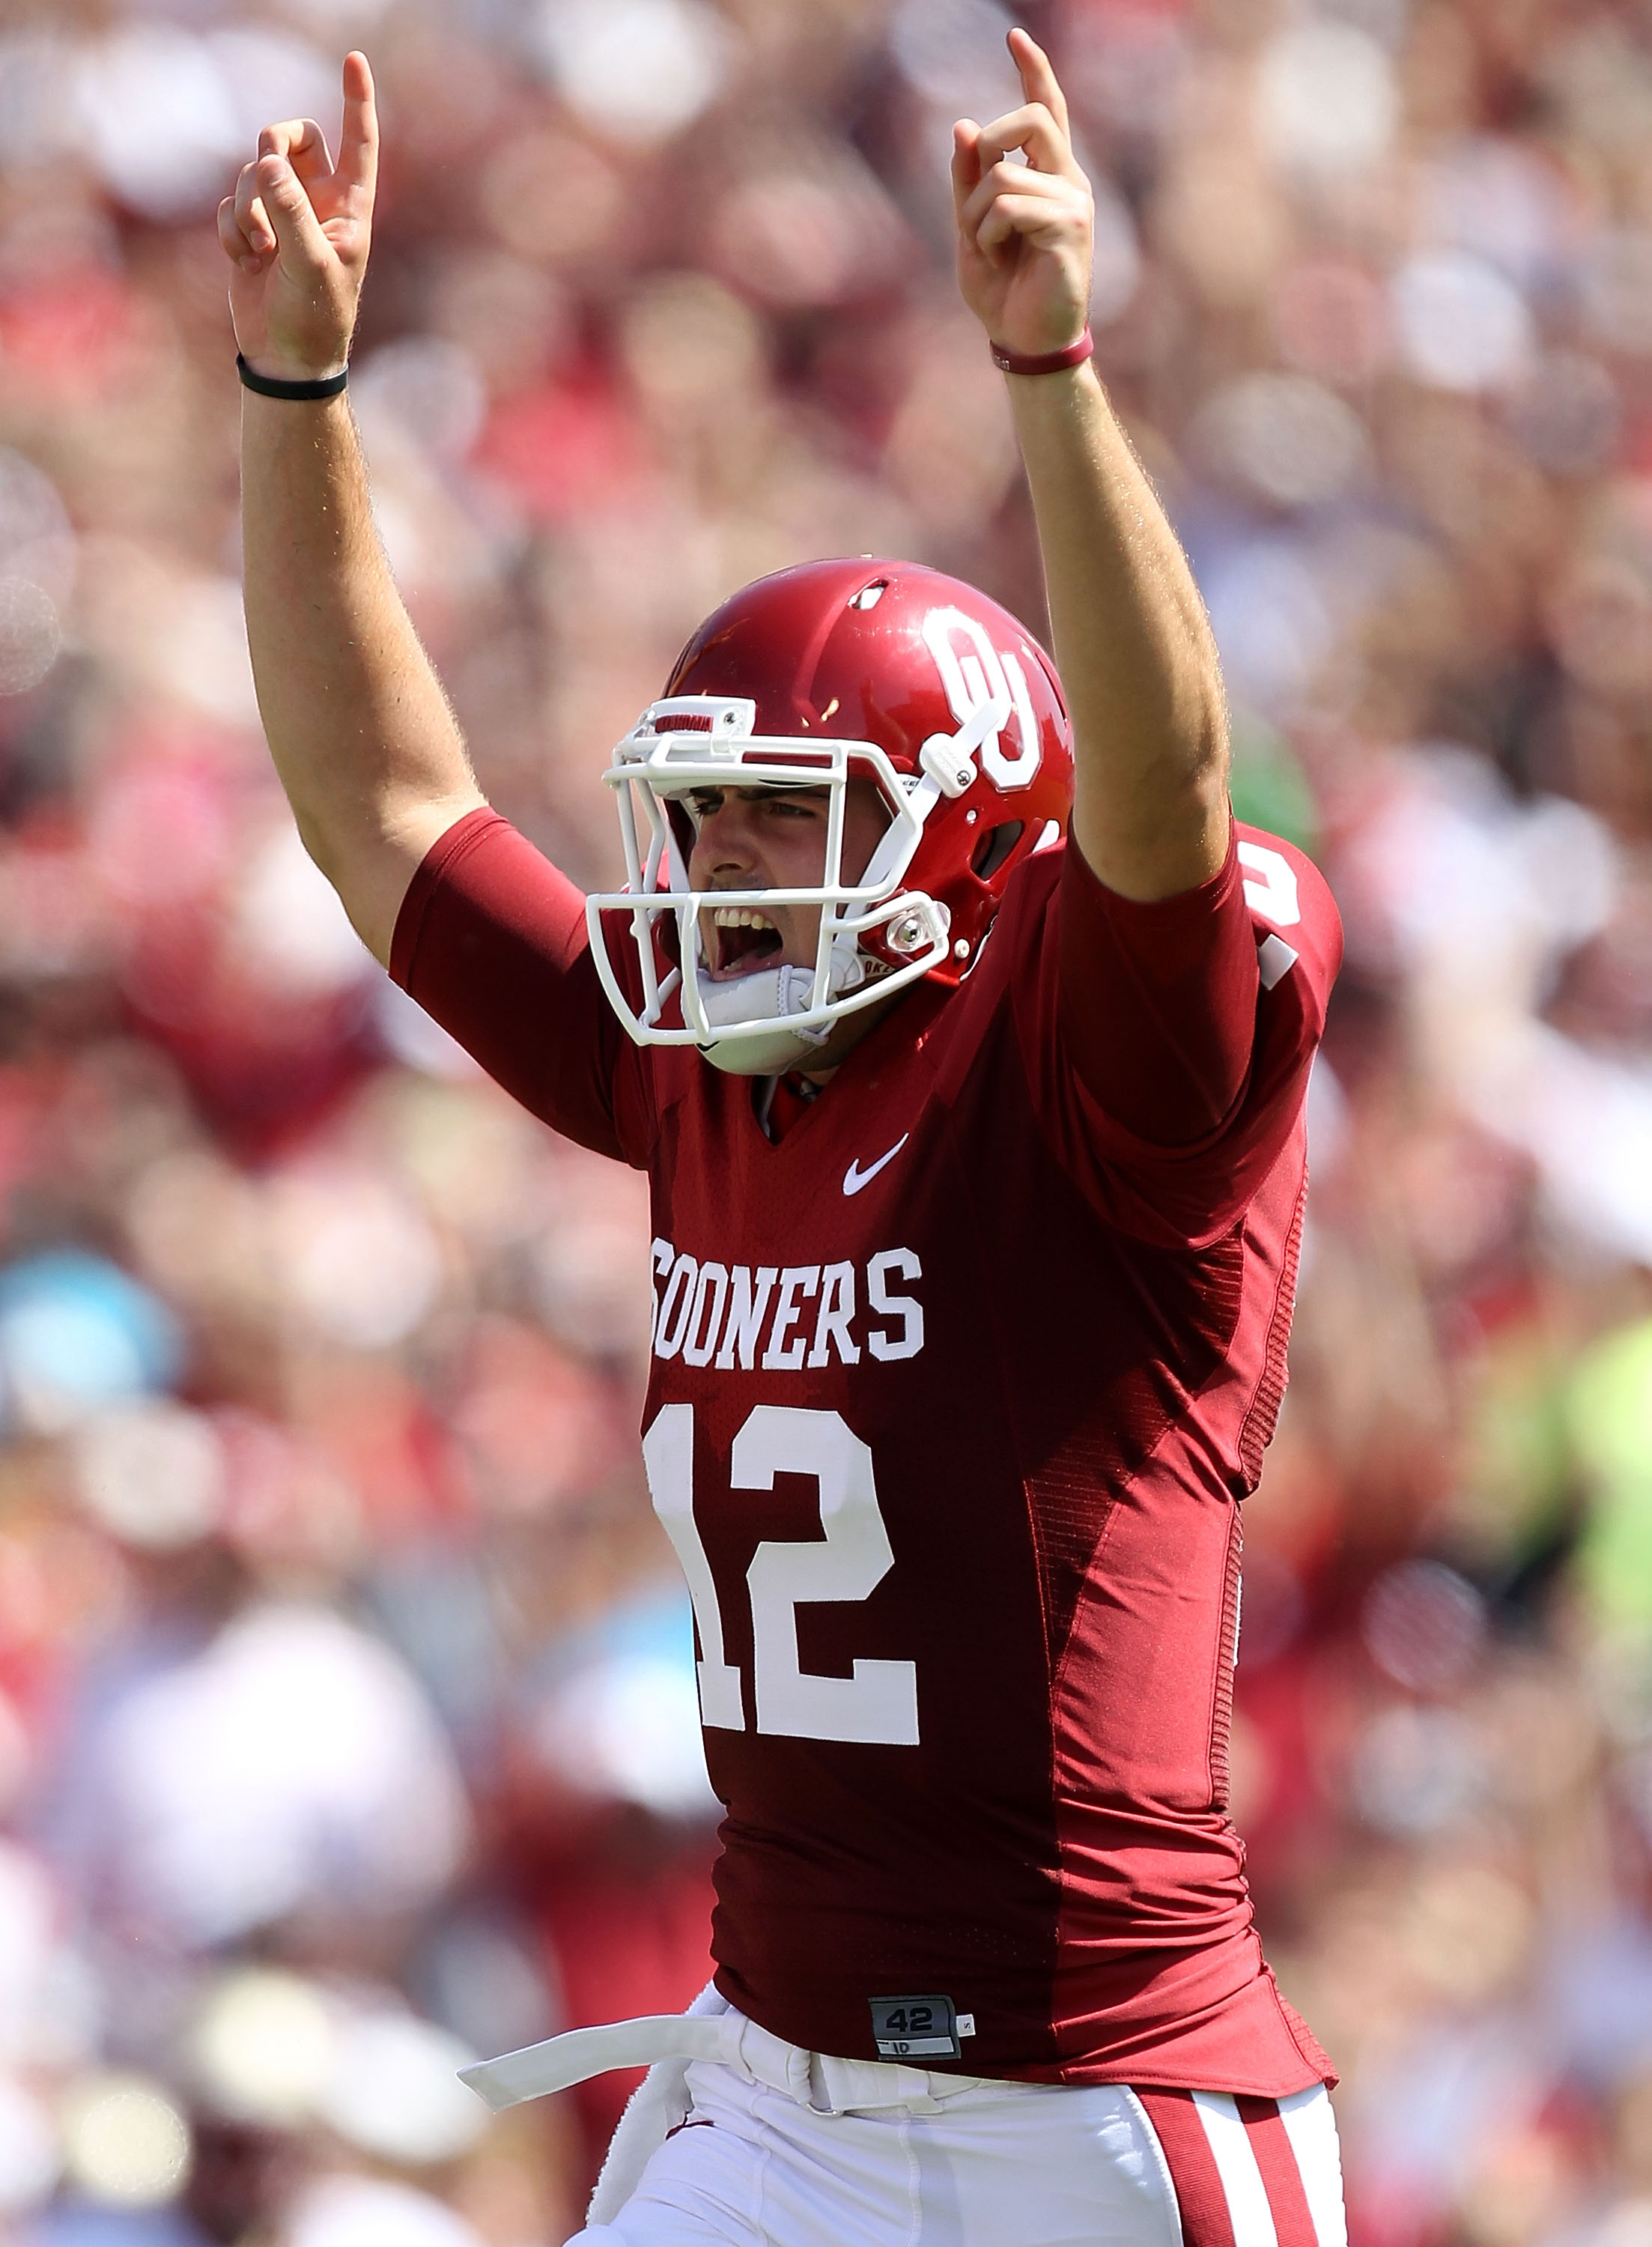 The Sooners are Landry Jones choice for #1.